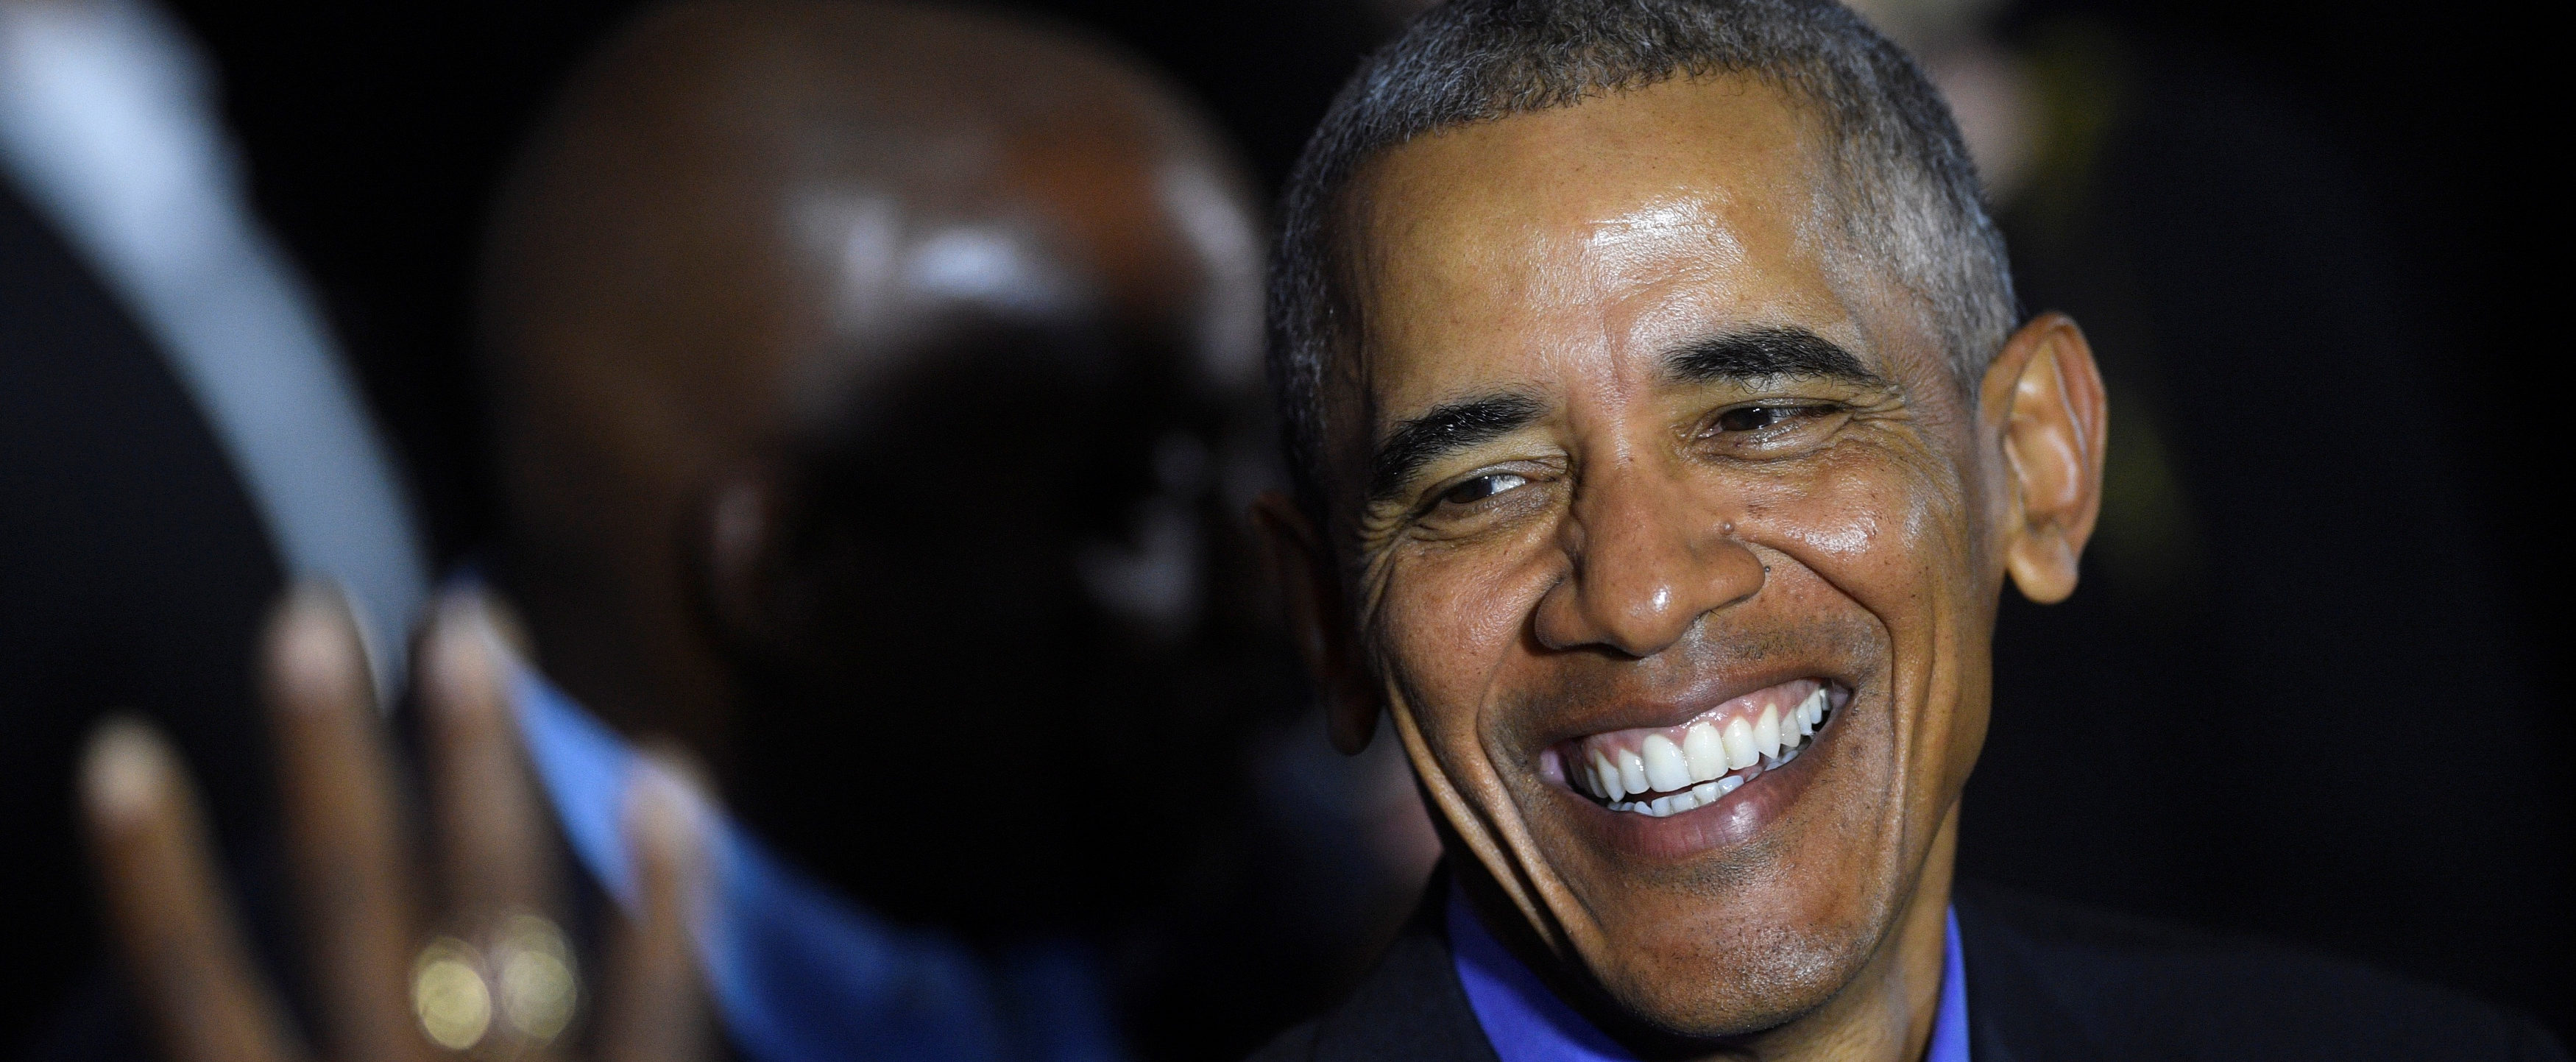 Former President Barack Obama greets supporters after joining New Jersey Democratic Gubernatorial candidate Jim Murphy at a rally in Newark, New Jersey U.S. October 19, 2017. REUTERS/Mark Makela